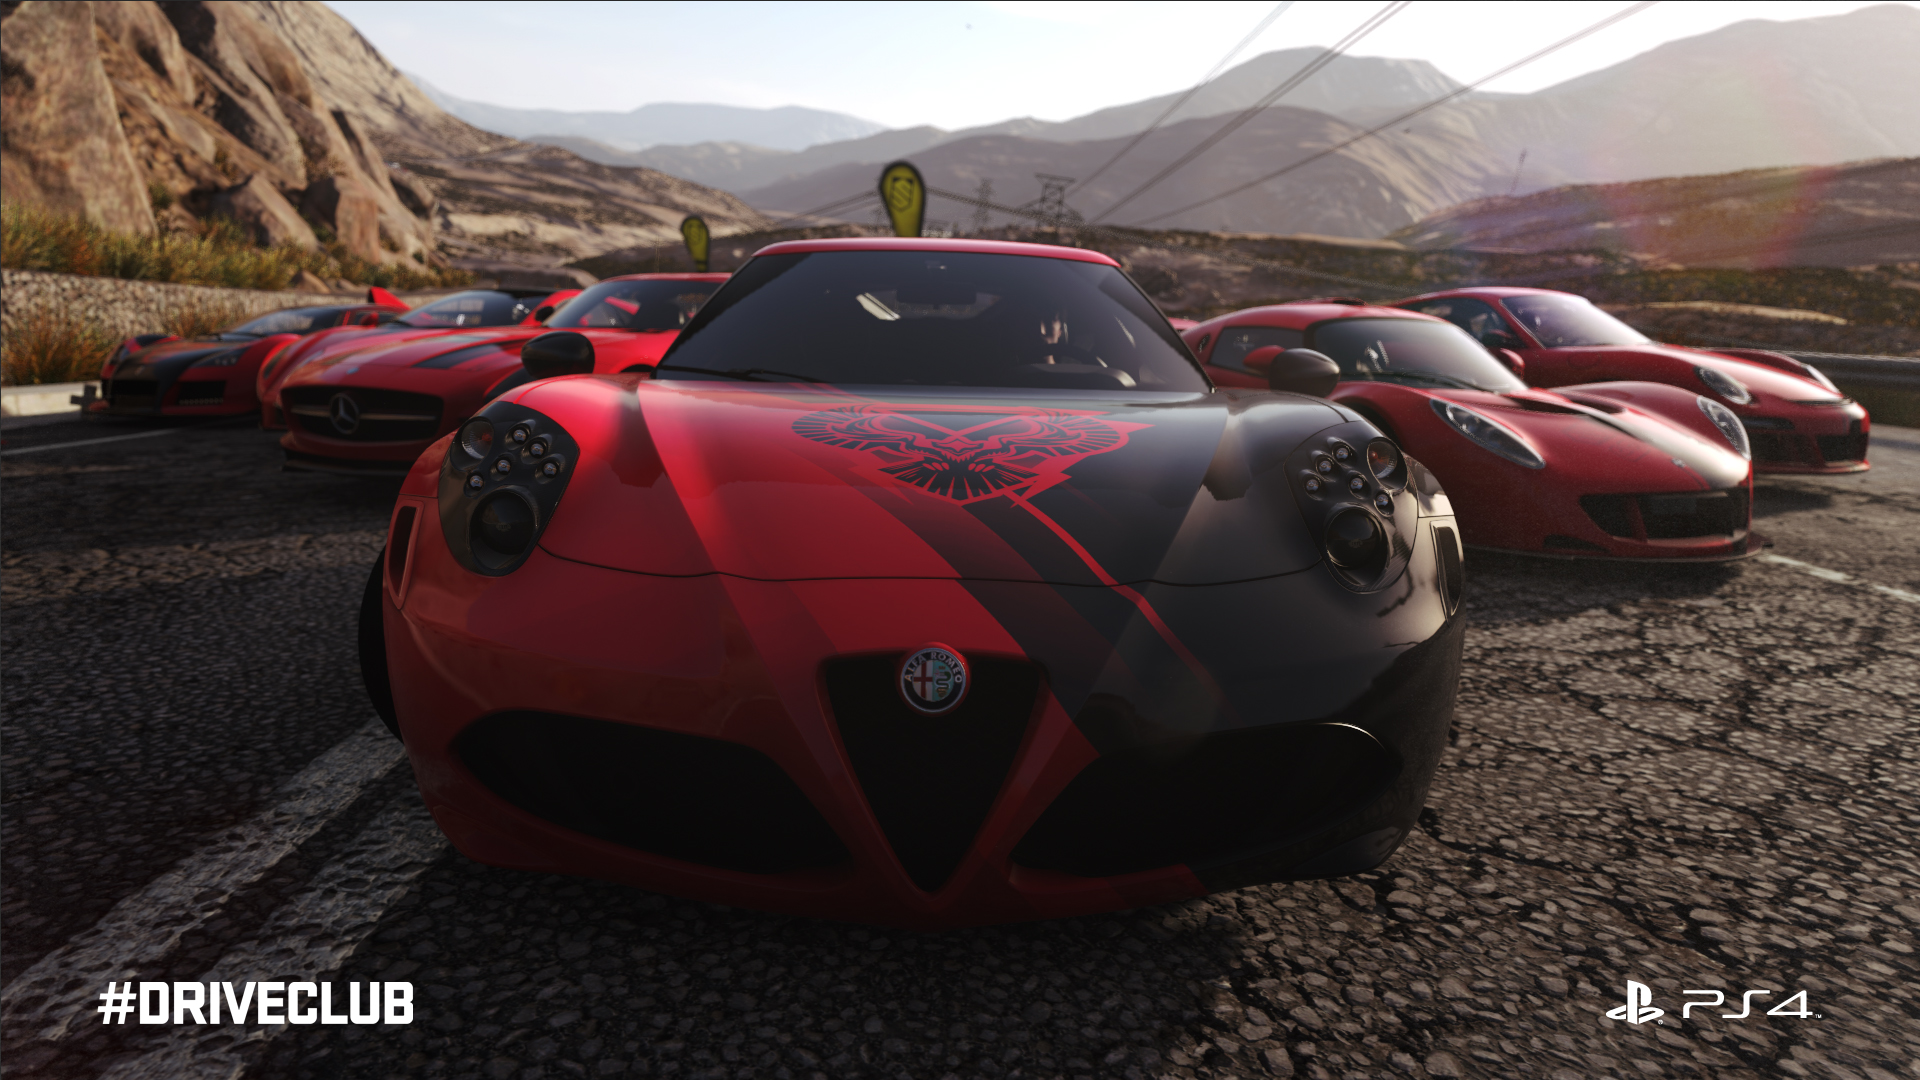 Driveclub Video Shows Spectacular Collision Physics And Effects